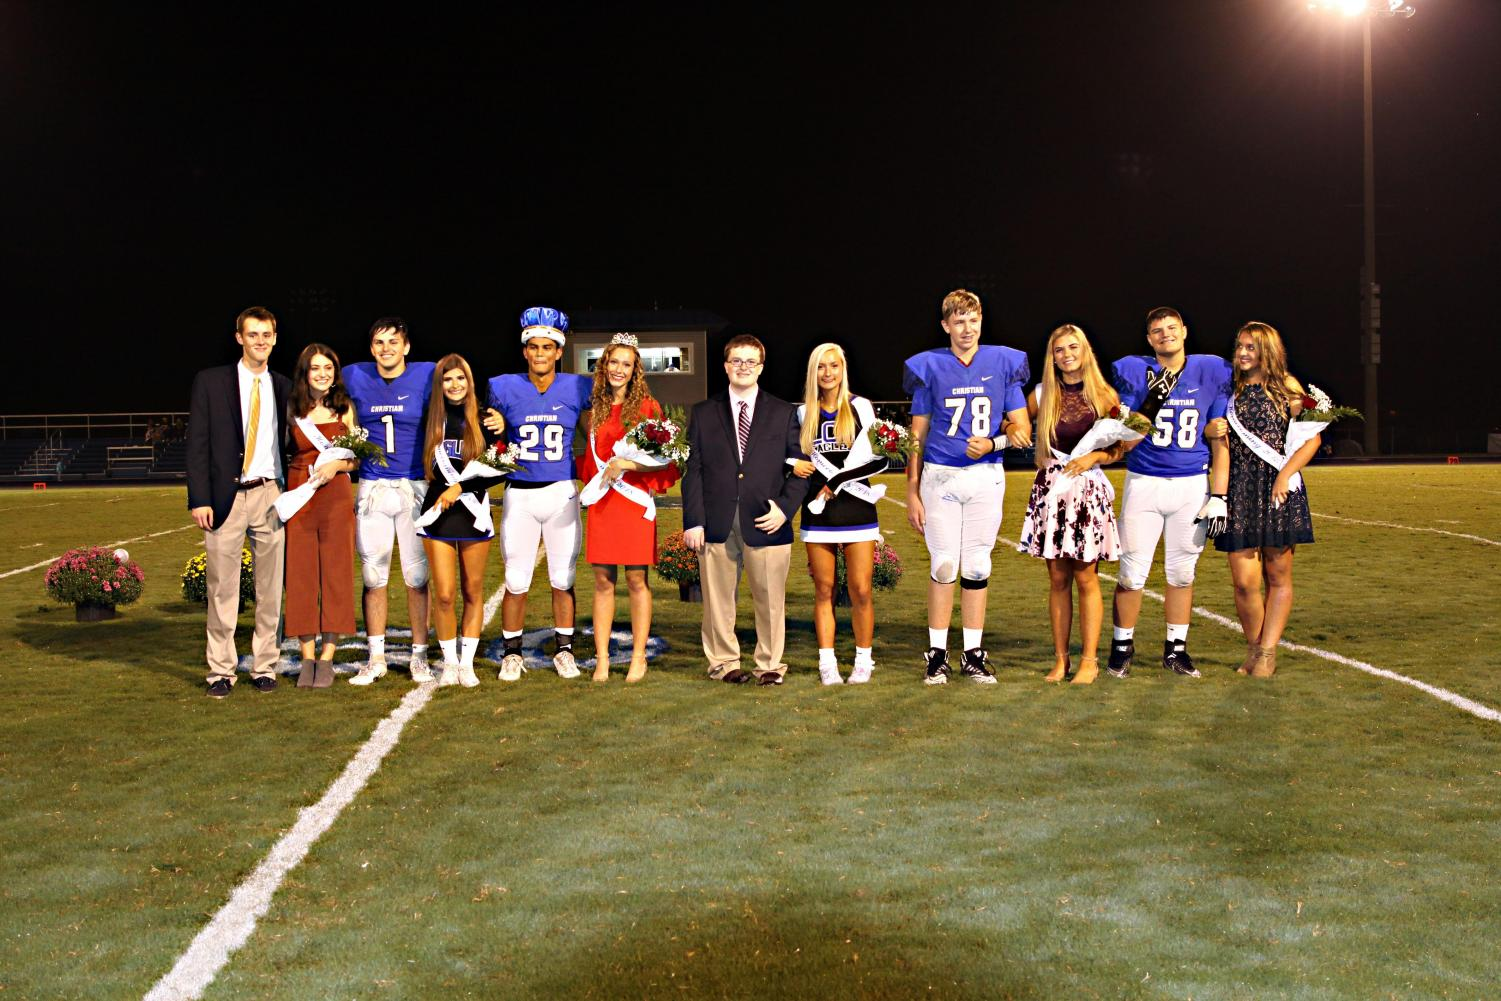 The 2018 Homecoming Court. This year's court will be announced during halftime at the football game on October 25.